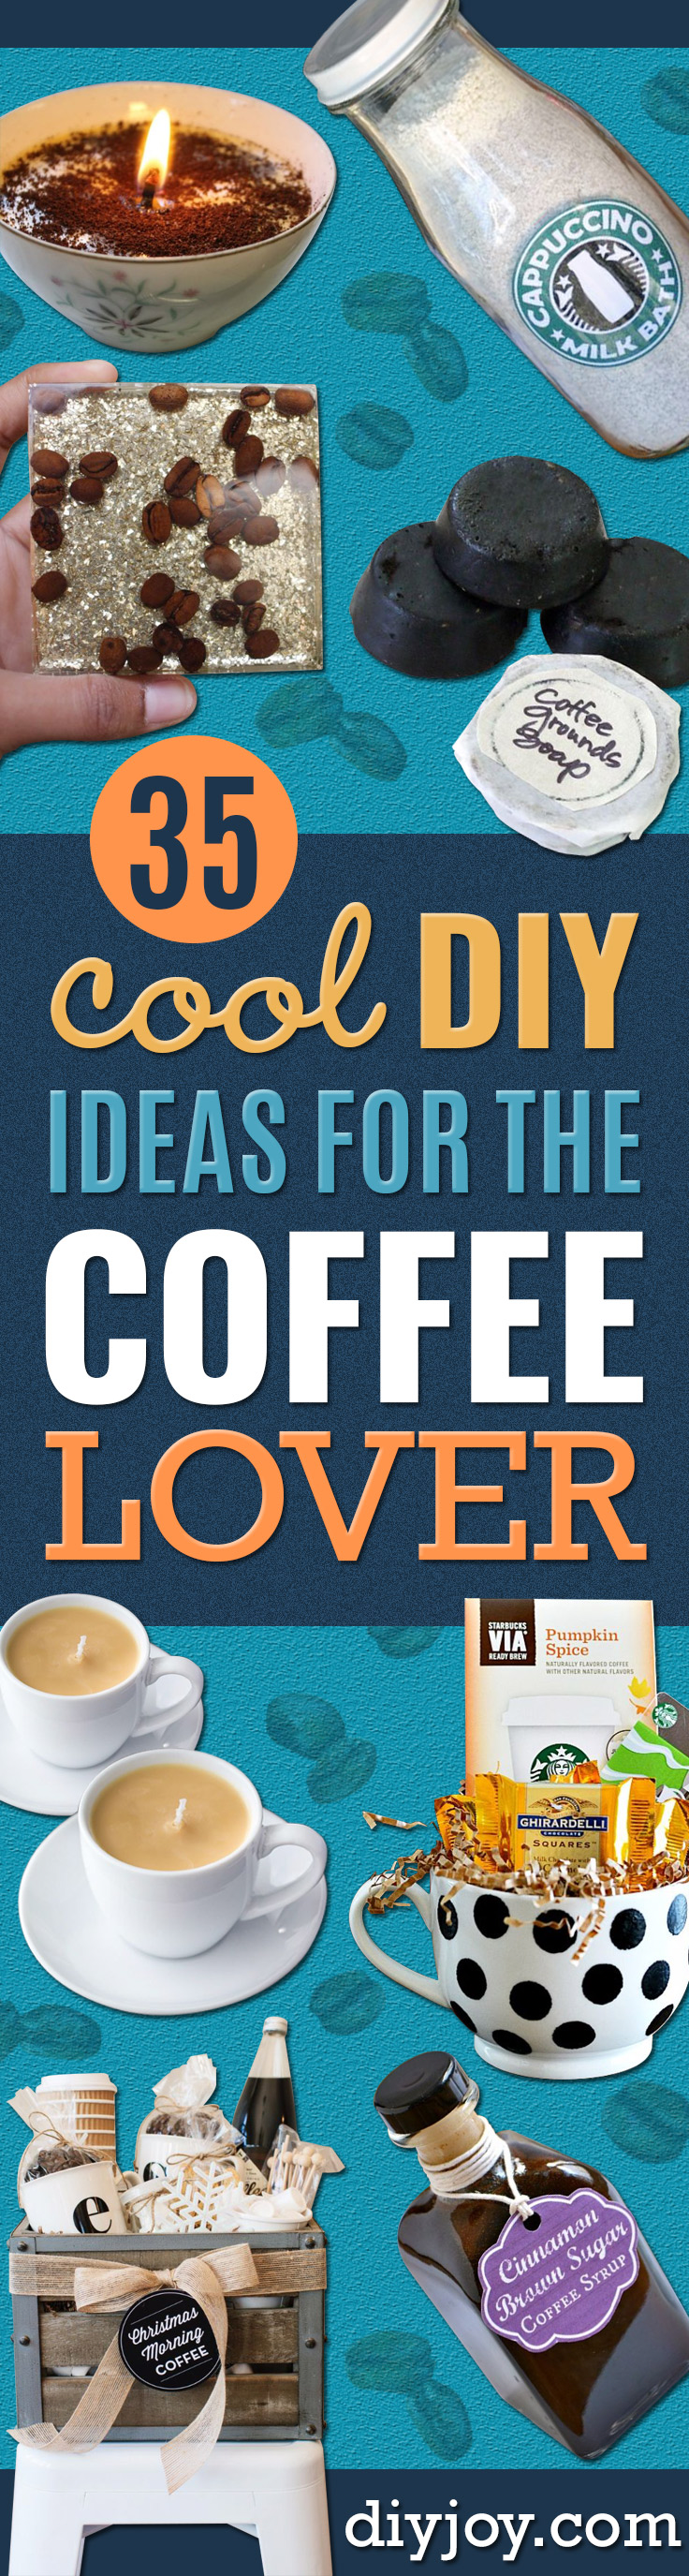 DIY Ideas for The Coffee Lover - Easy and Cool Gift Ideas for People Who Love Coffee Drinks - Coaster, Cups and Mugs, Tumblers, Canisters and Do It Yourself Gift Ideas - Gift Jars and Baskets, Fun Presents to Make for Mom, Dad and Friends http://diyjoy.com/diy-ideas-coffee-lover